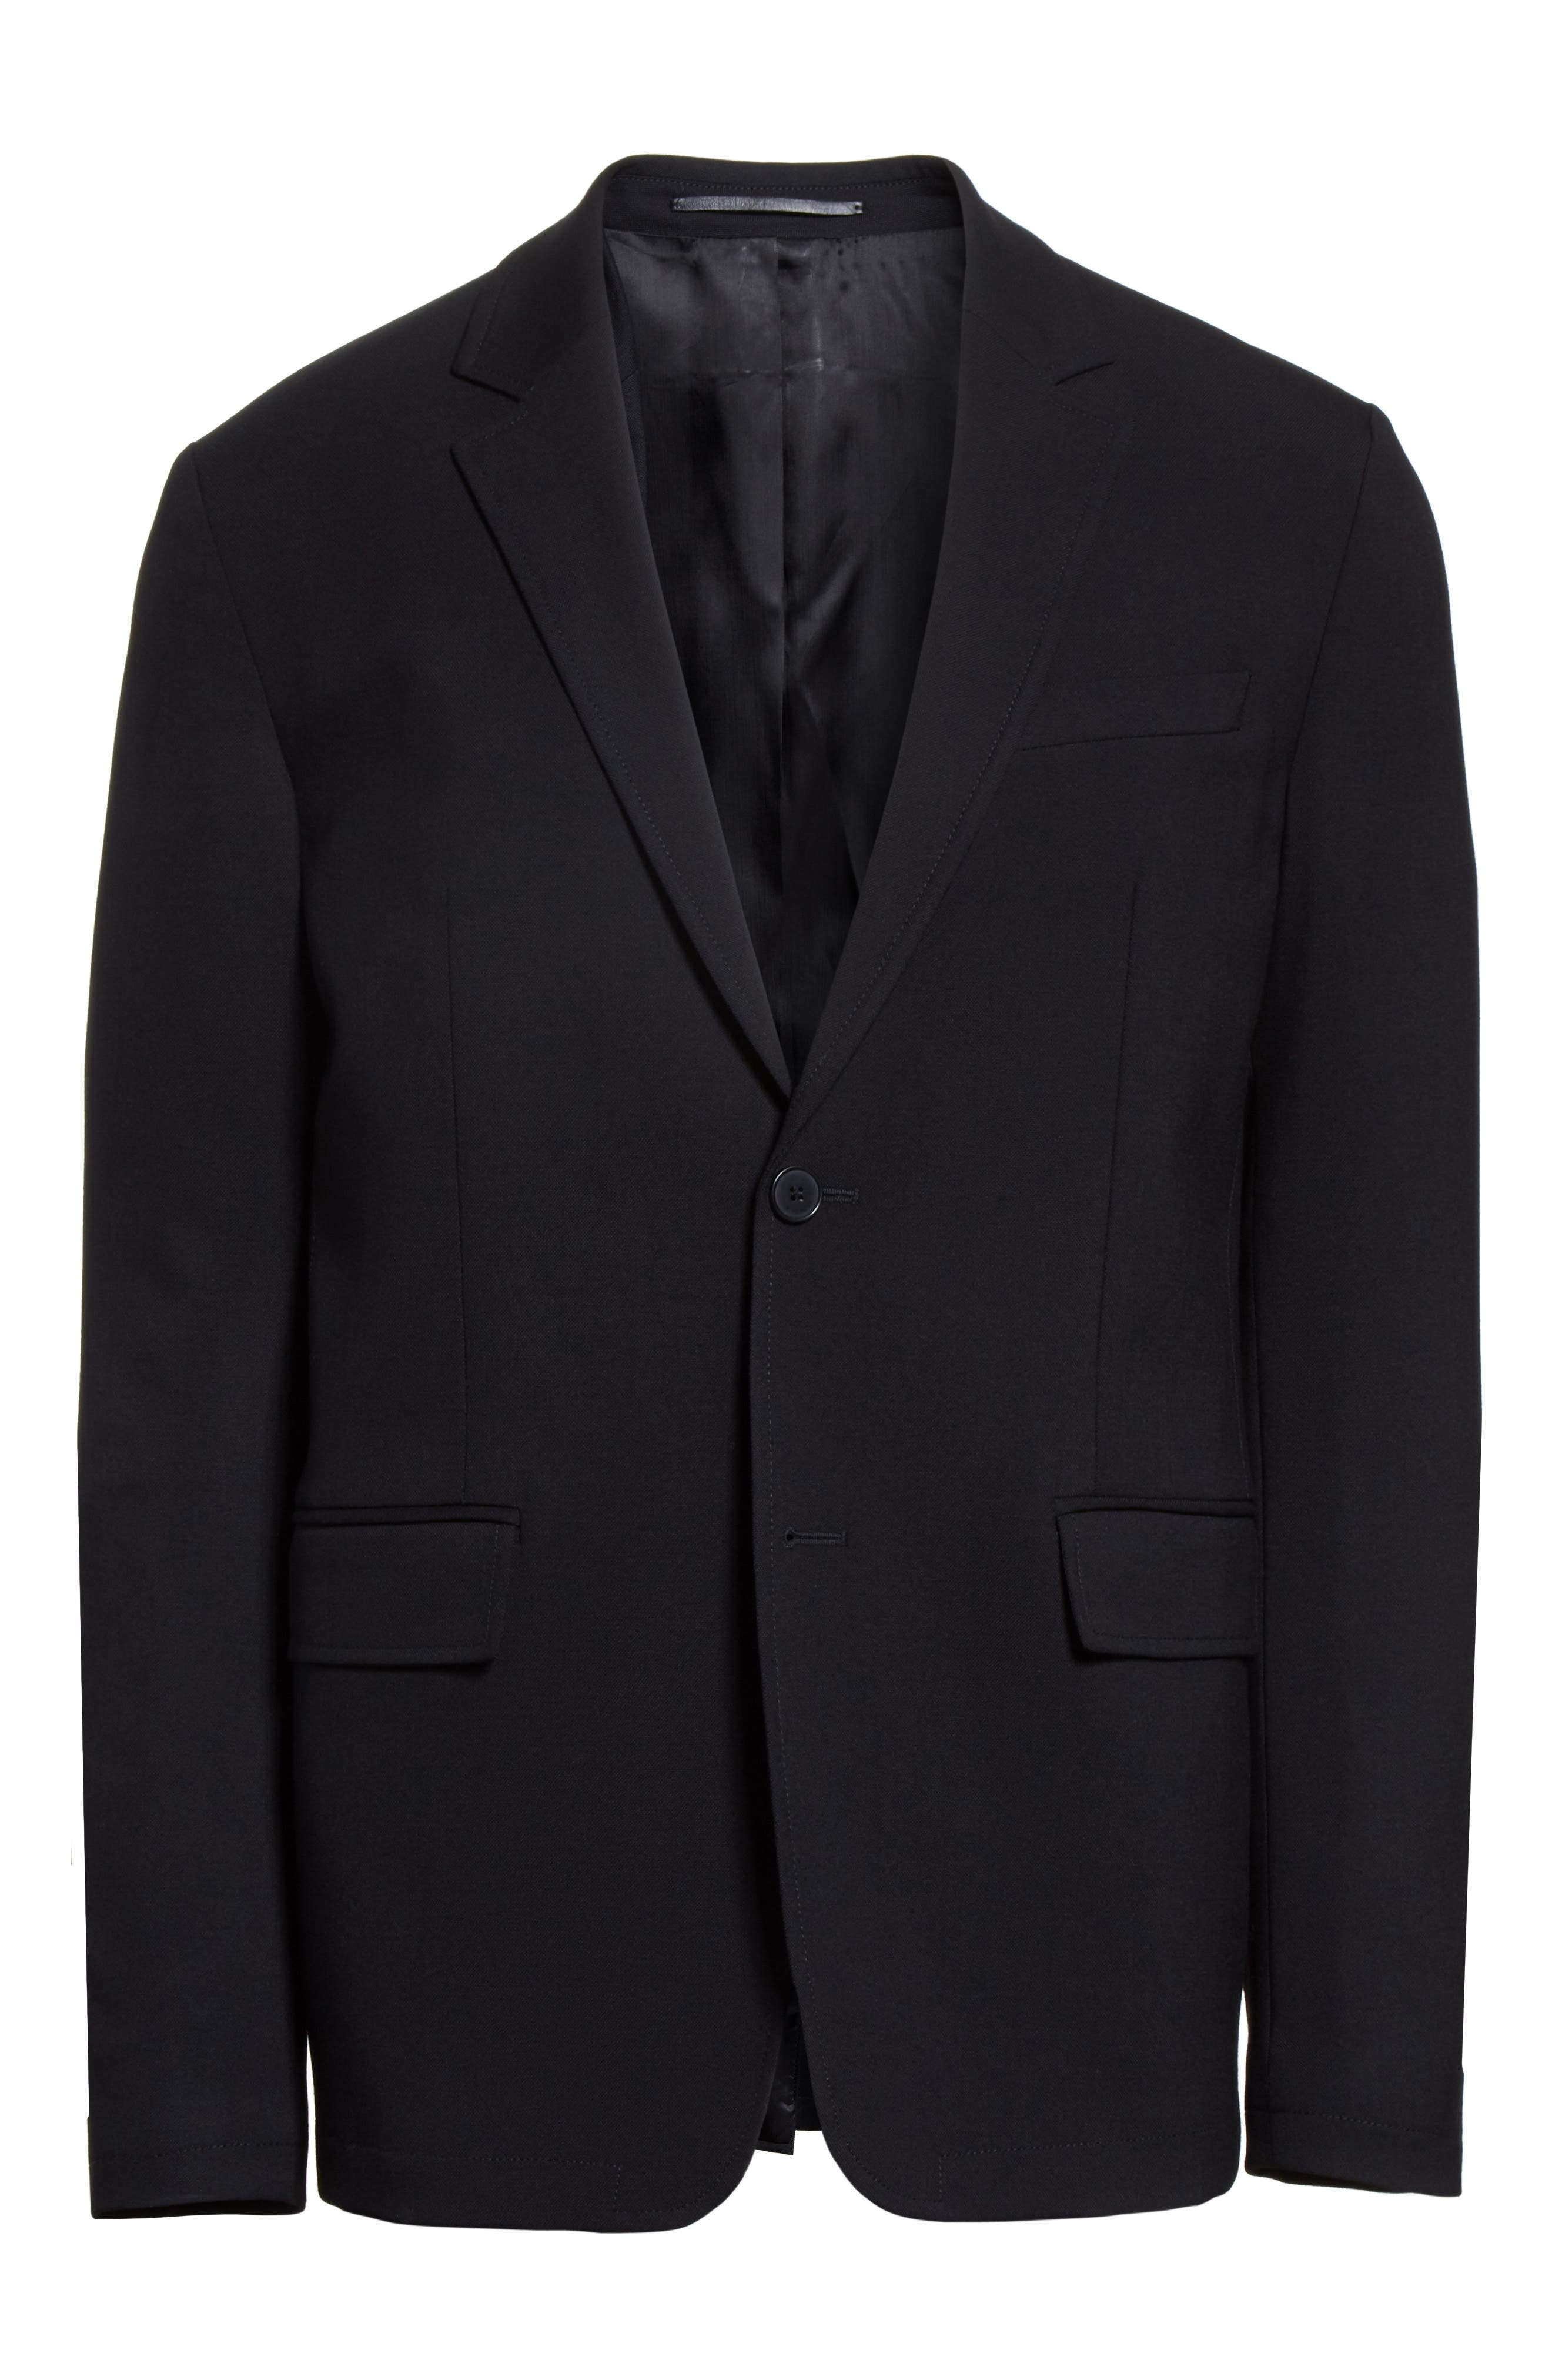 Star Tape Stretch Wool Jacket,                             Alternate thumbnail 2, color,